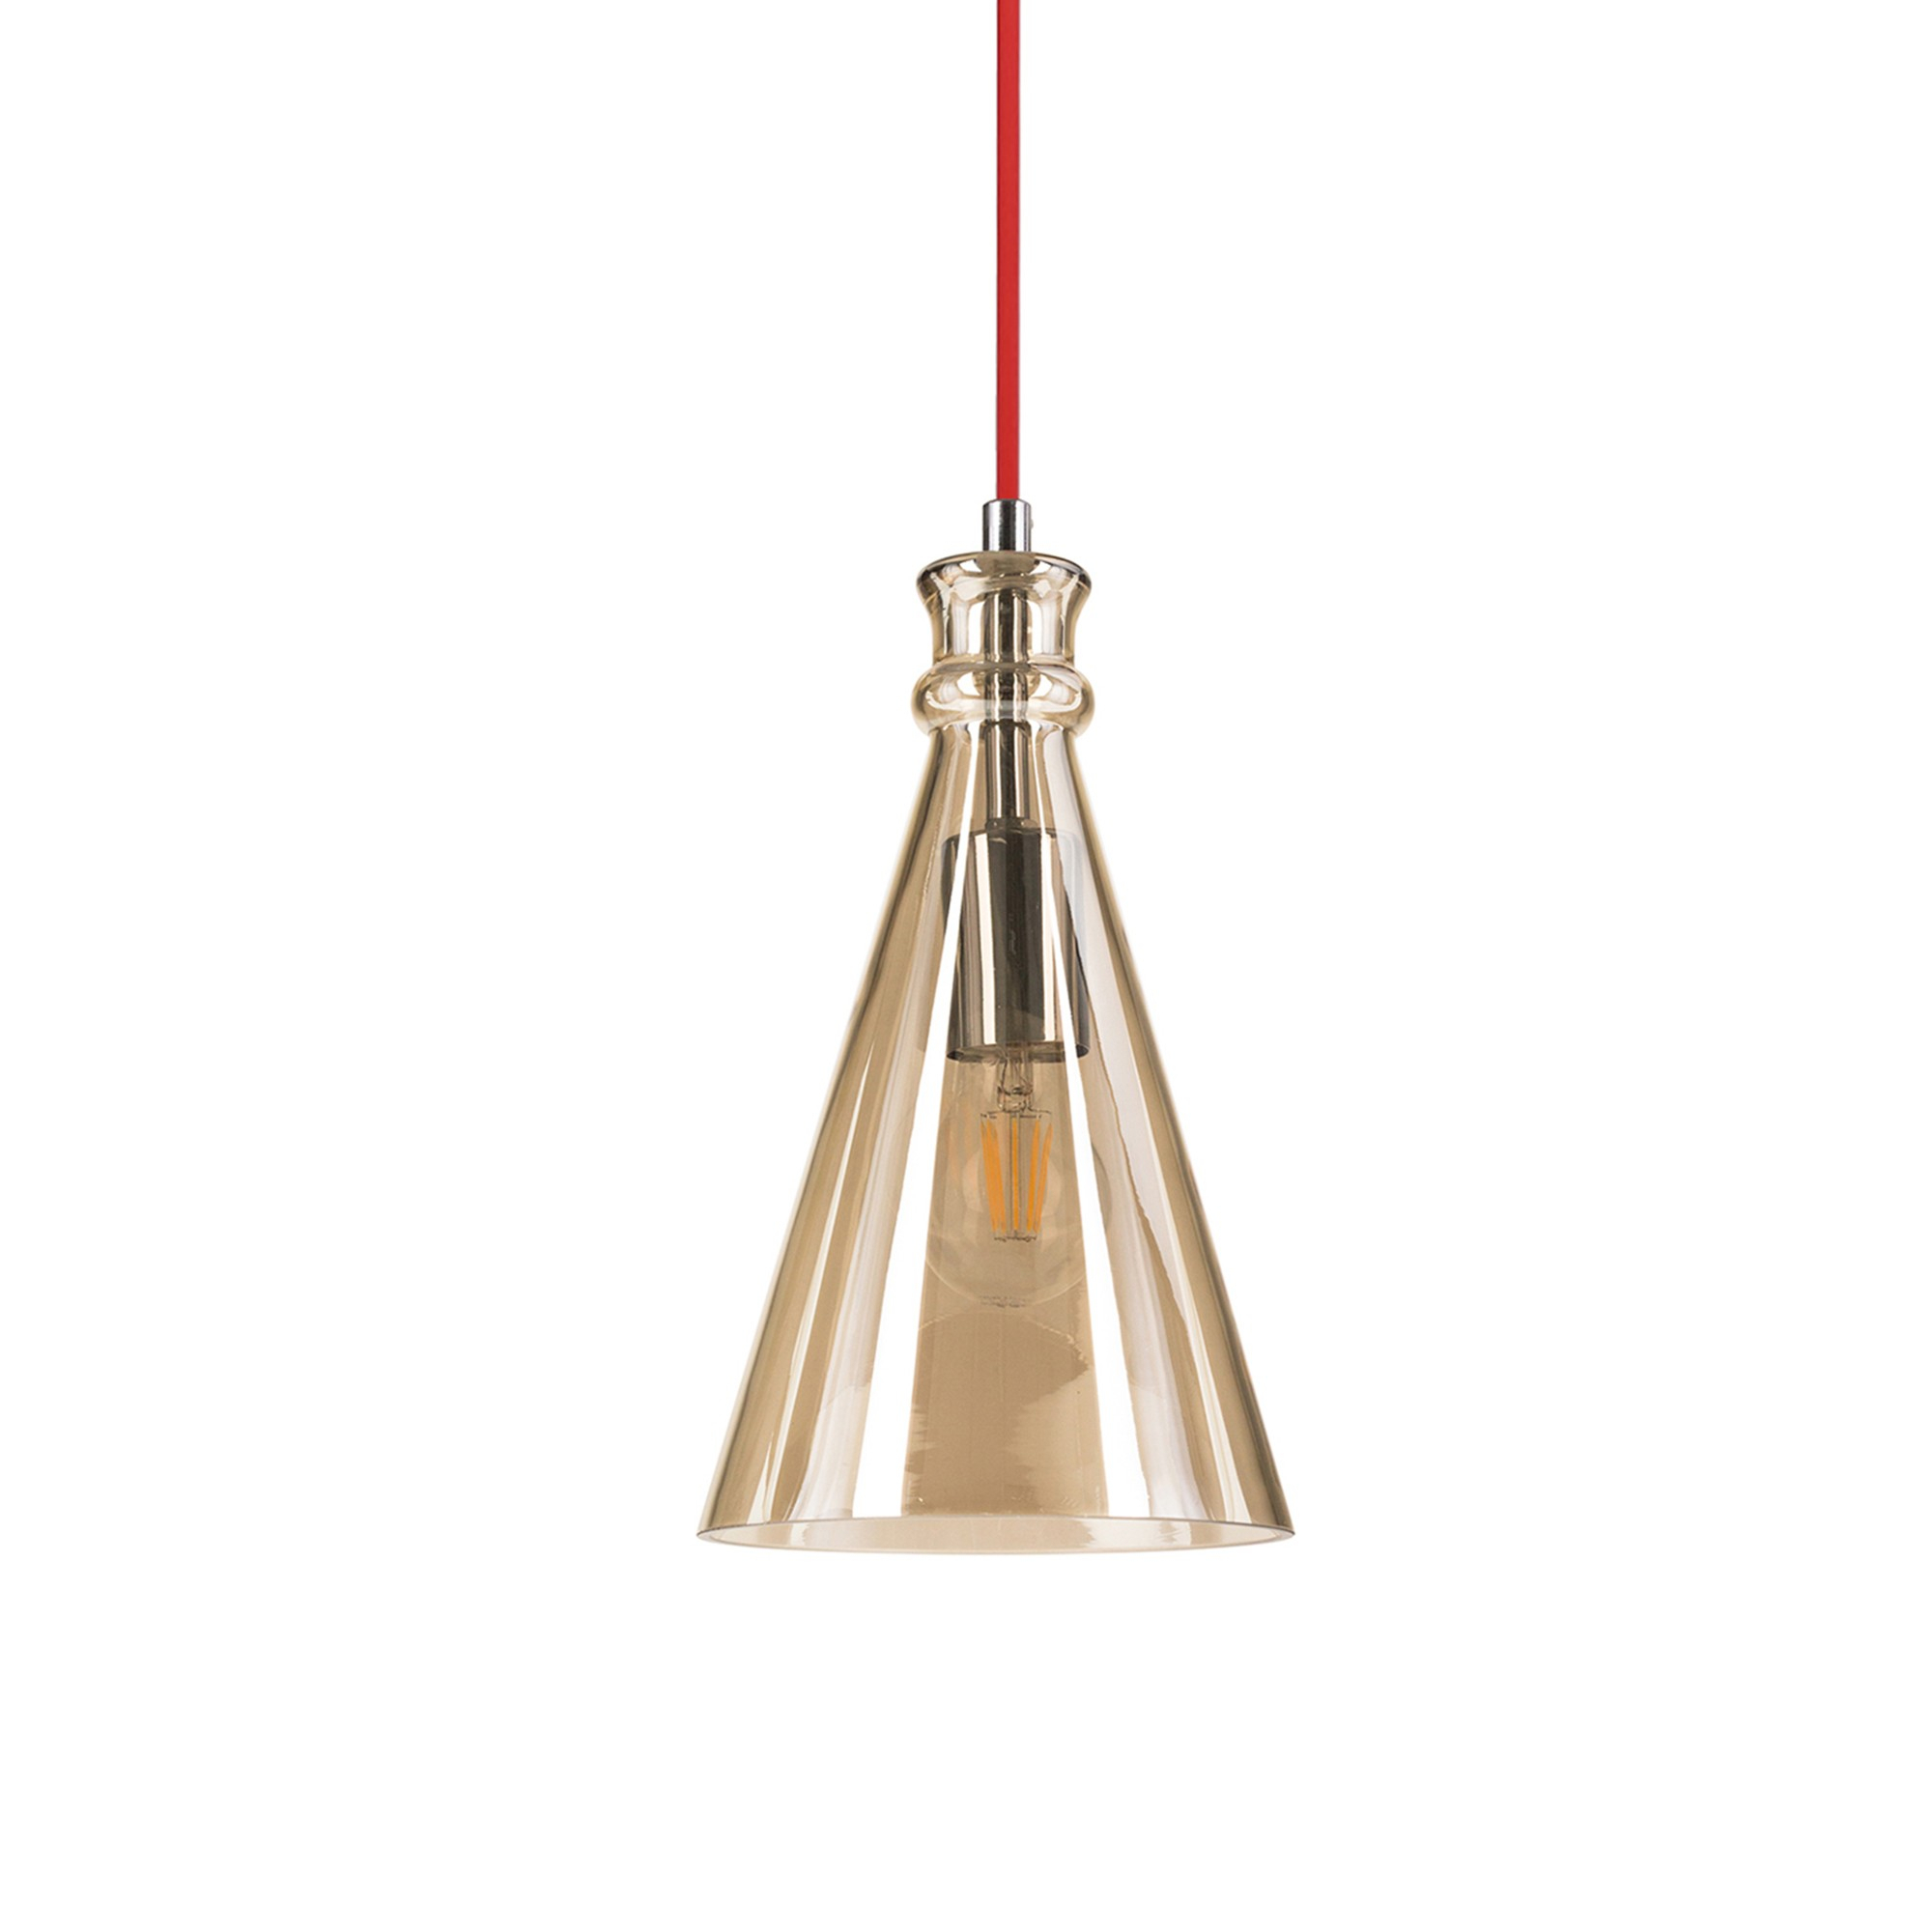 Spot Light Serena Cone Ceiling Pendant Light Intended For Guro 1 Light Cone Pendants (View 7 of 30)